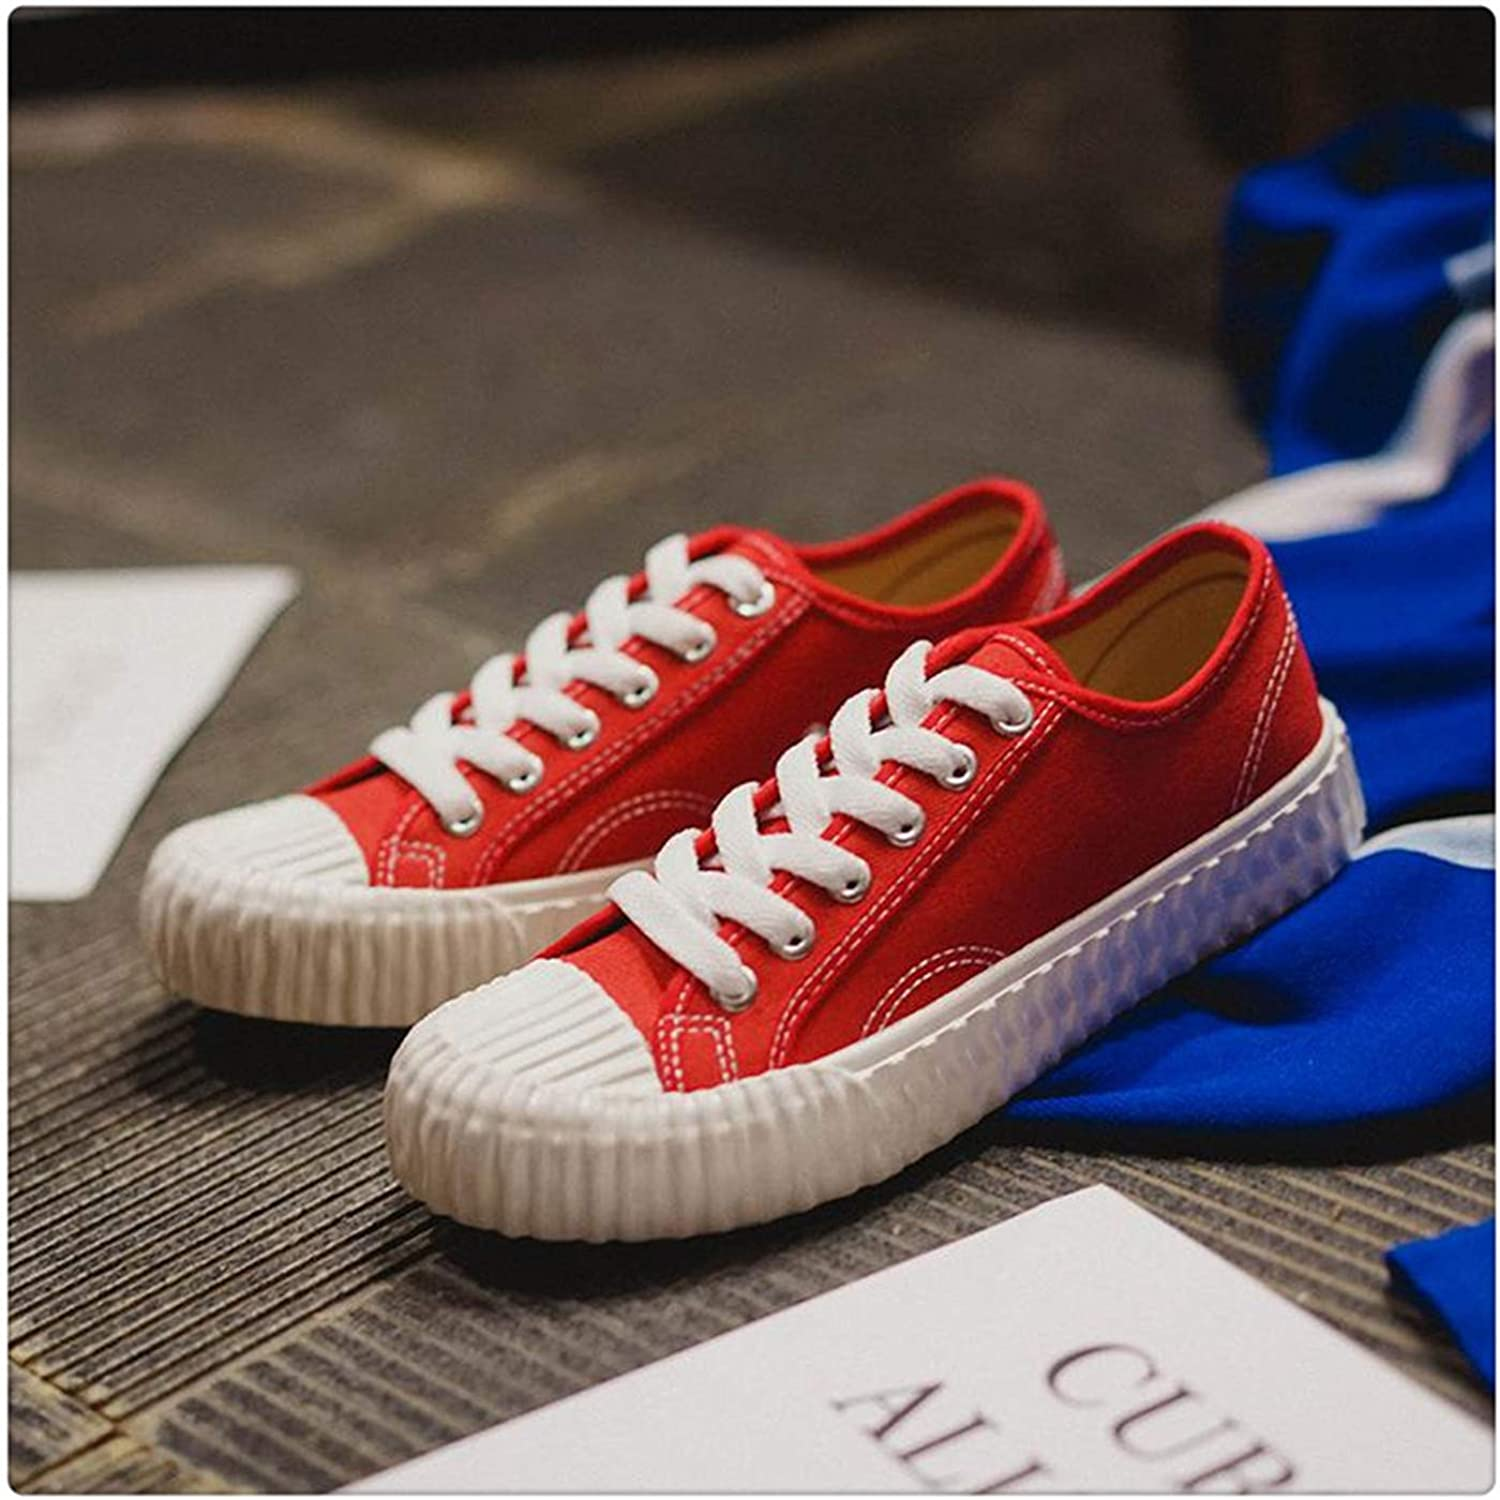 LUSDO& Women Casual Sneakers 2019 White Canvas shoes Female Spring Summer Woman Students Walking shoes shoes Tenis Feminino Red 41